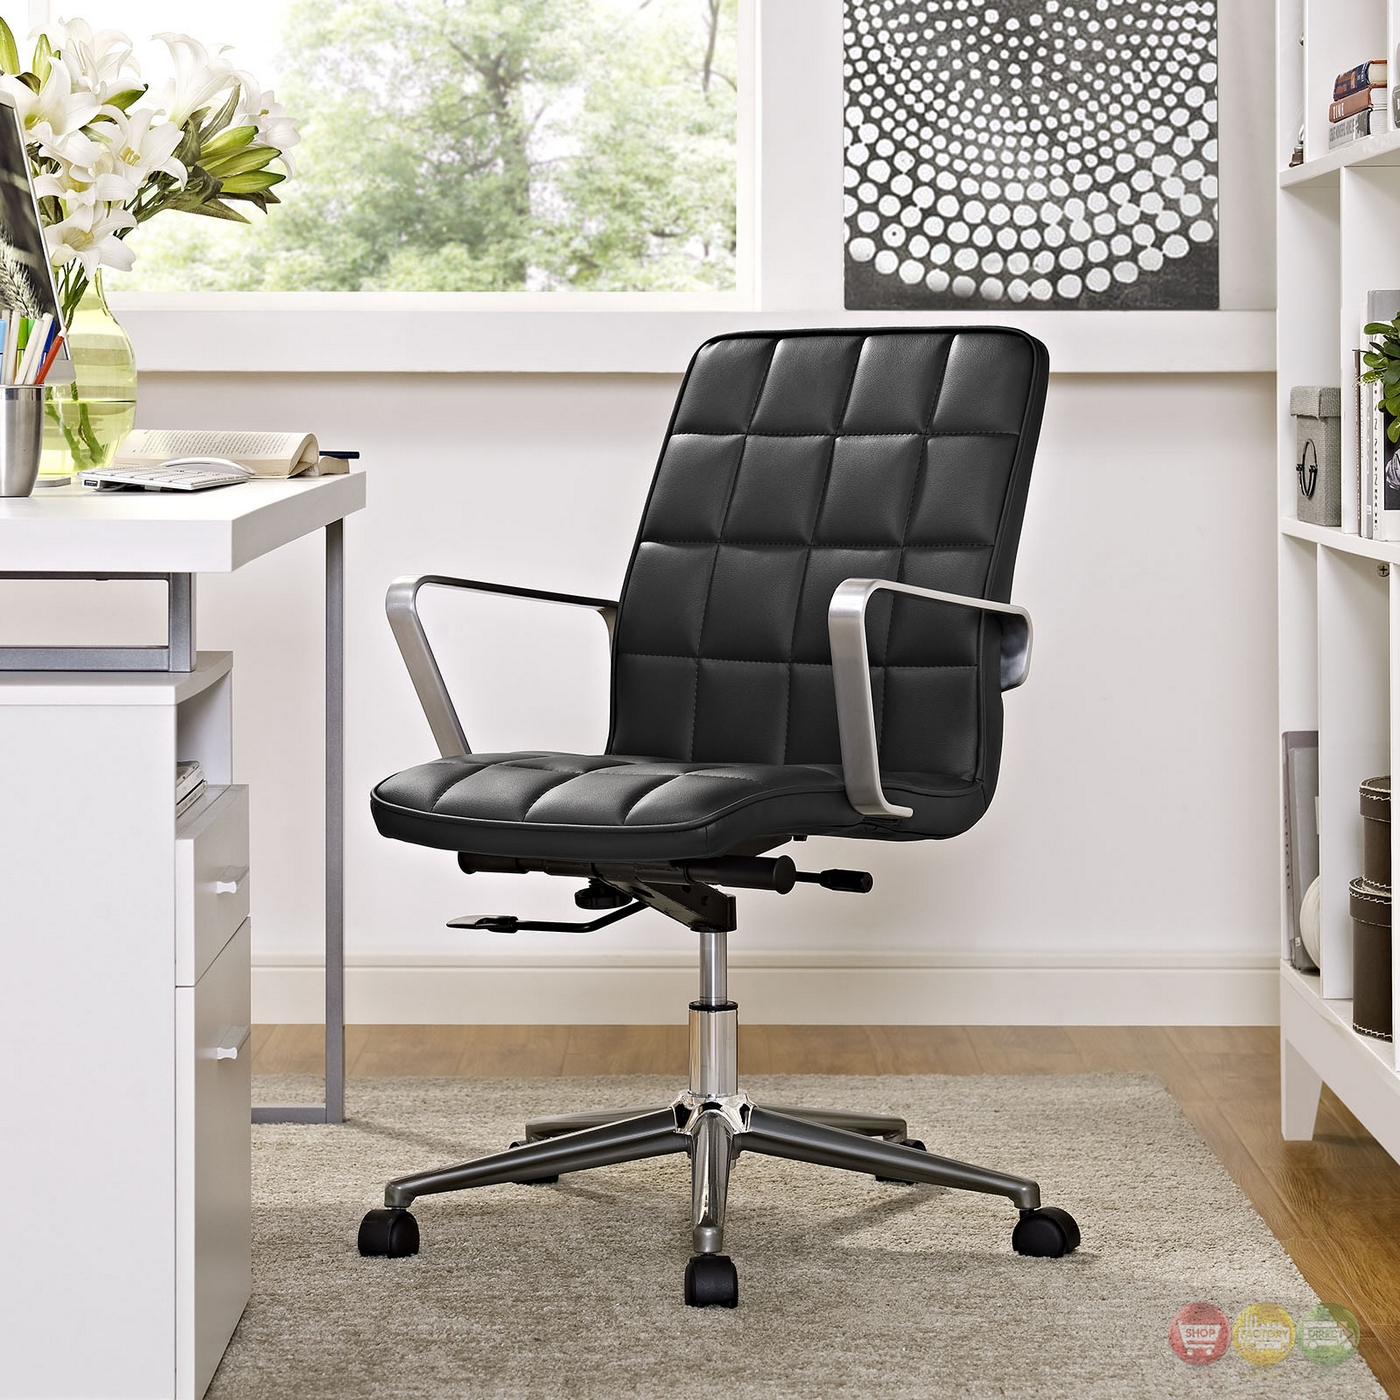 swivel office chair plans cinema accessories tile vinyl upholstered with adjustable tilt